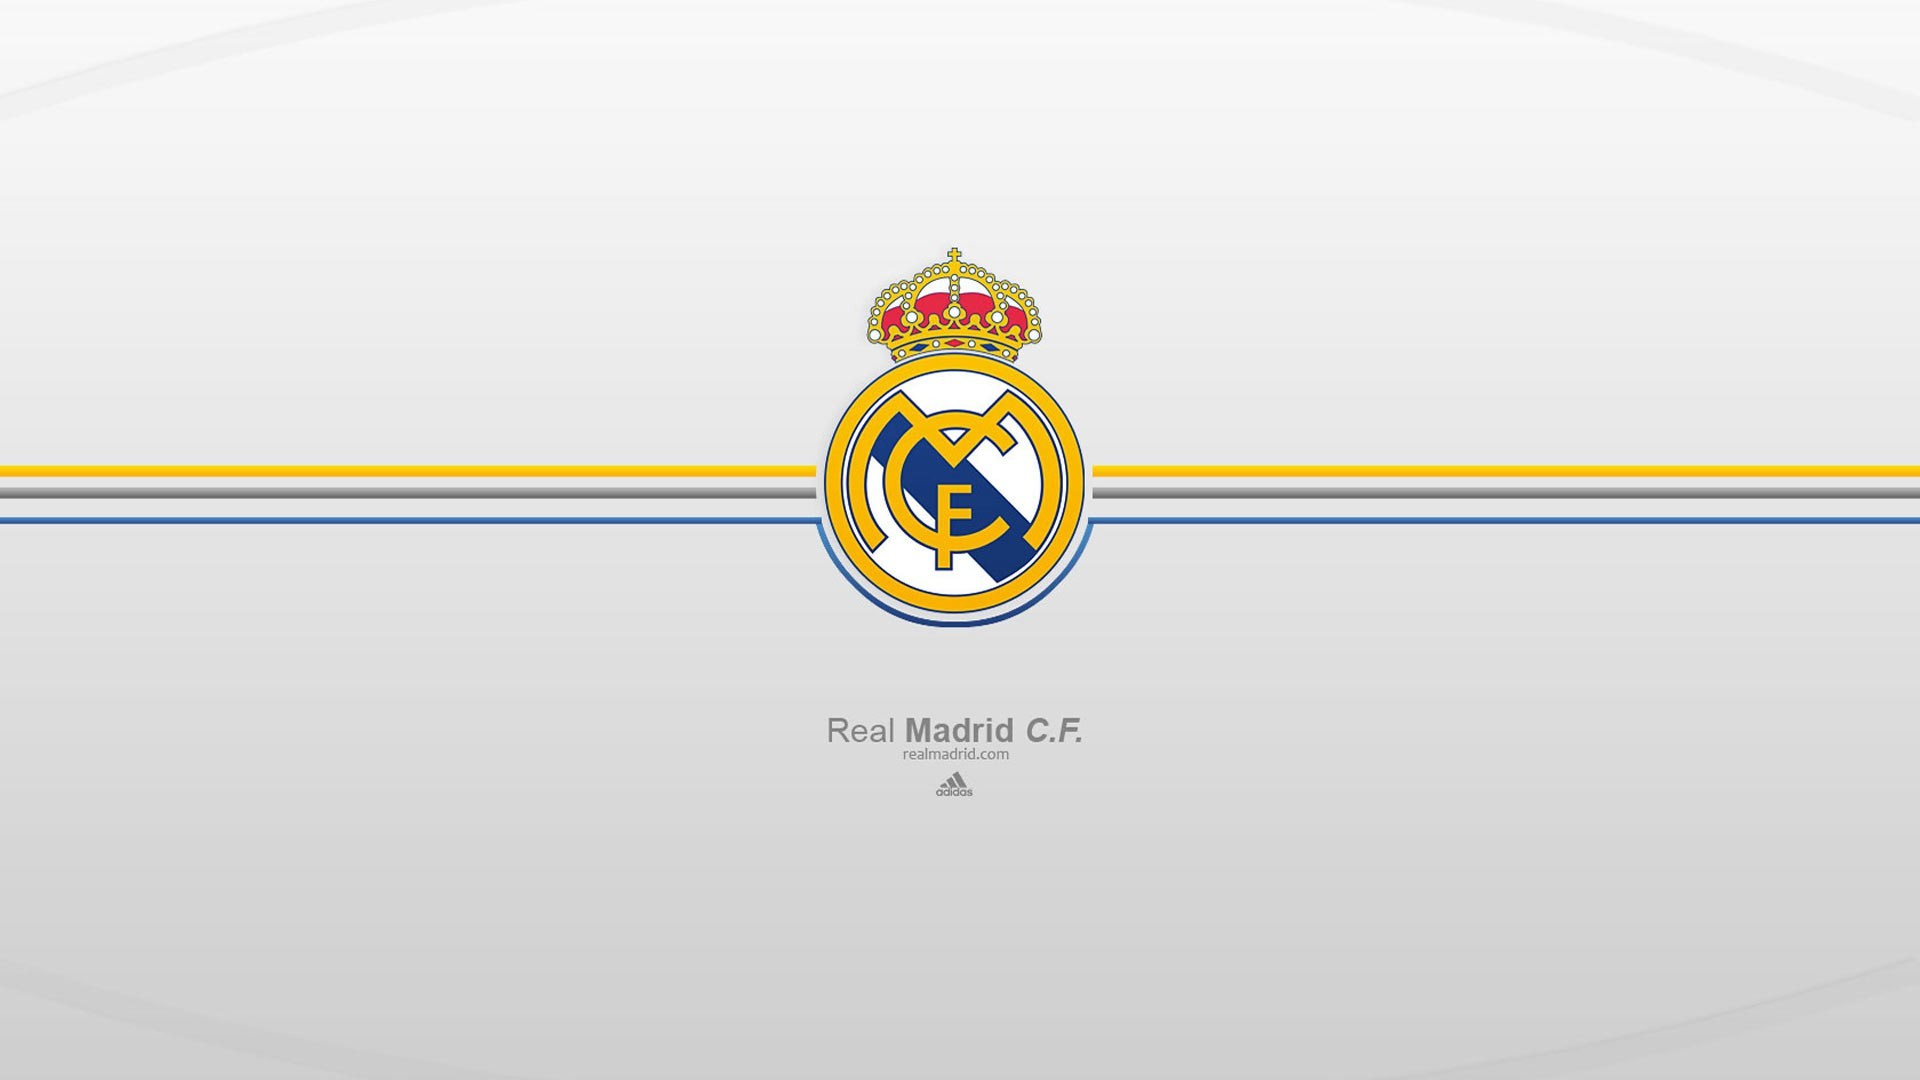 1920x1080 Real Madrid Logo Wallpaper HD Widescreen.